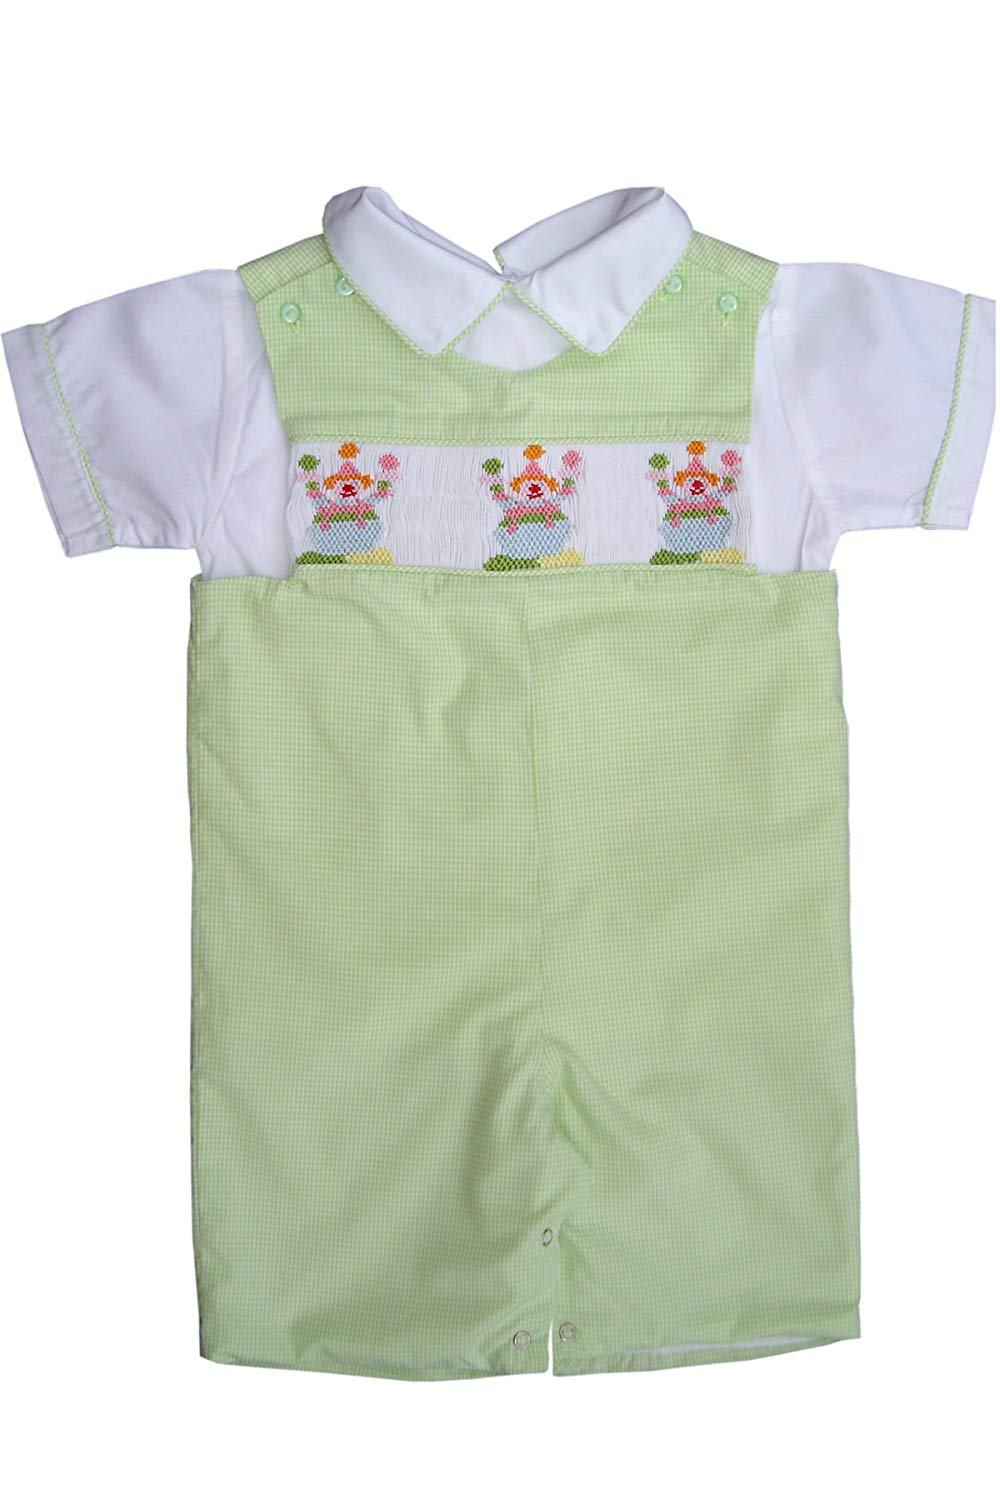 ef2158540 Get Quotations · Carouselwear Toddler Boys Smocked Birthday Clown Shortall  Longall with Shirt